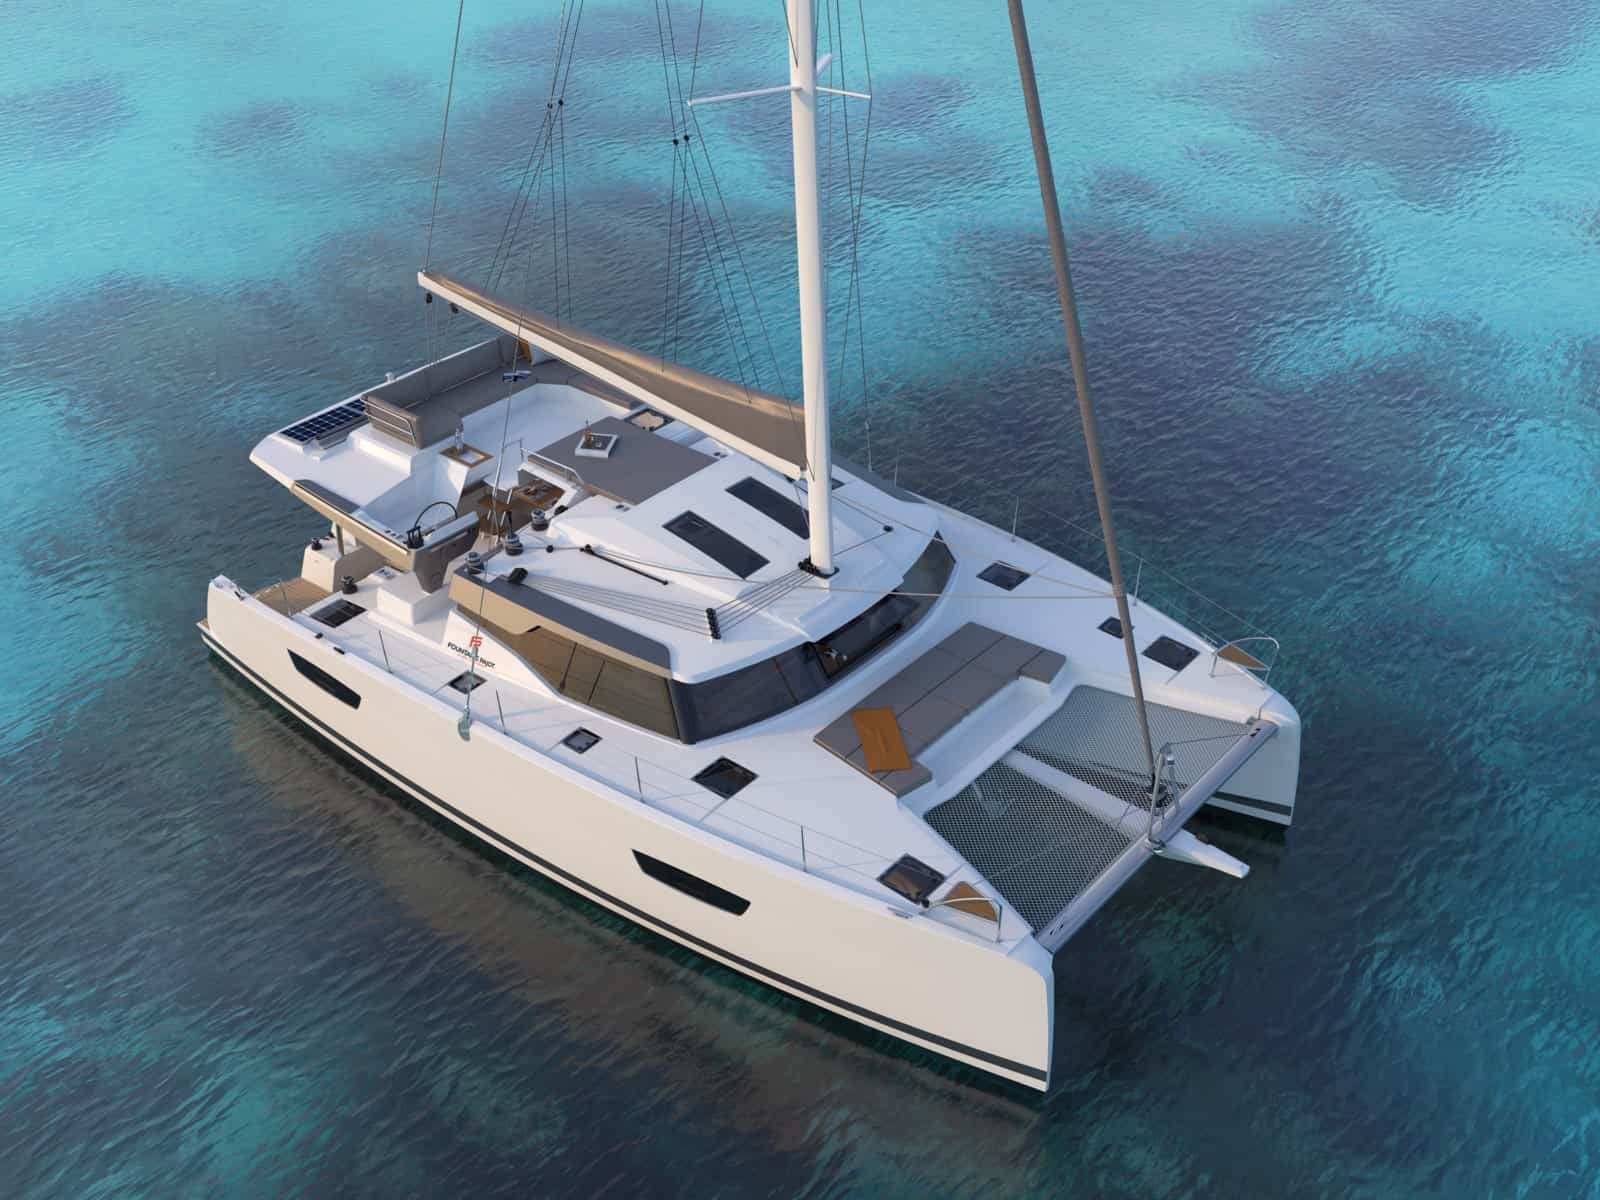 fountaine pajot 45 catamaran anchored